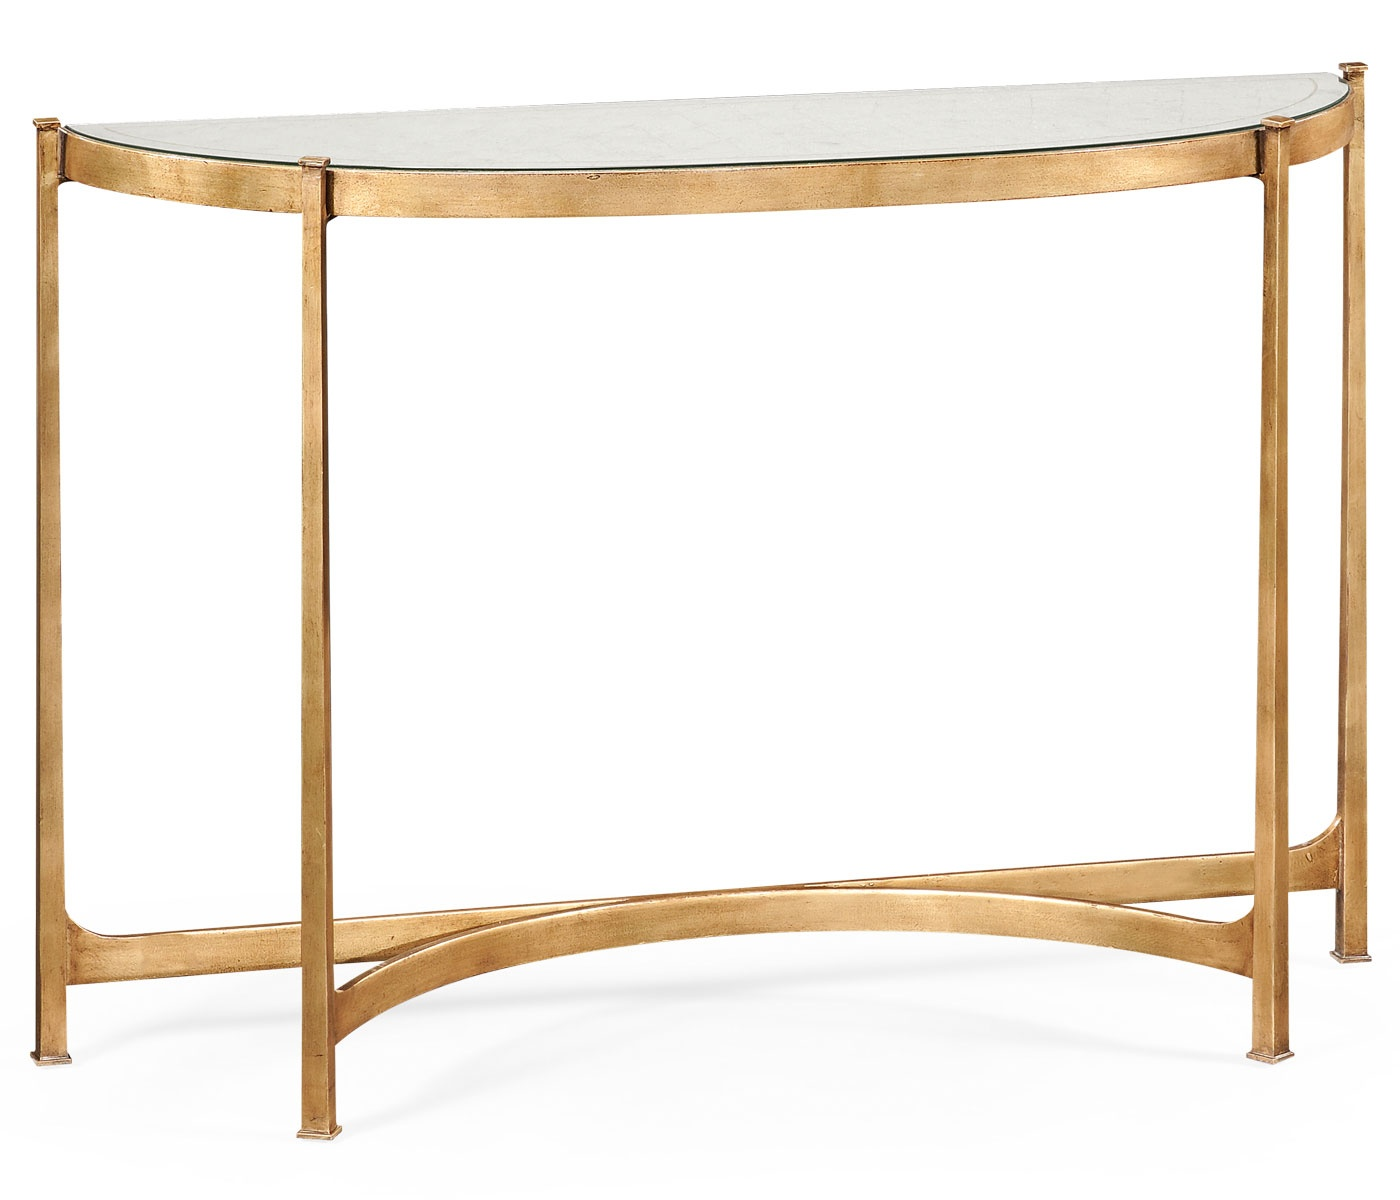 gold glass sofa table build a irvine reviews french demilune console swanky interiors